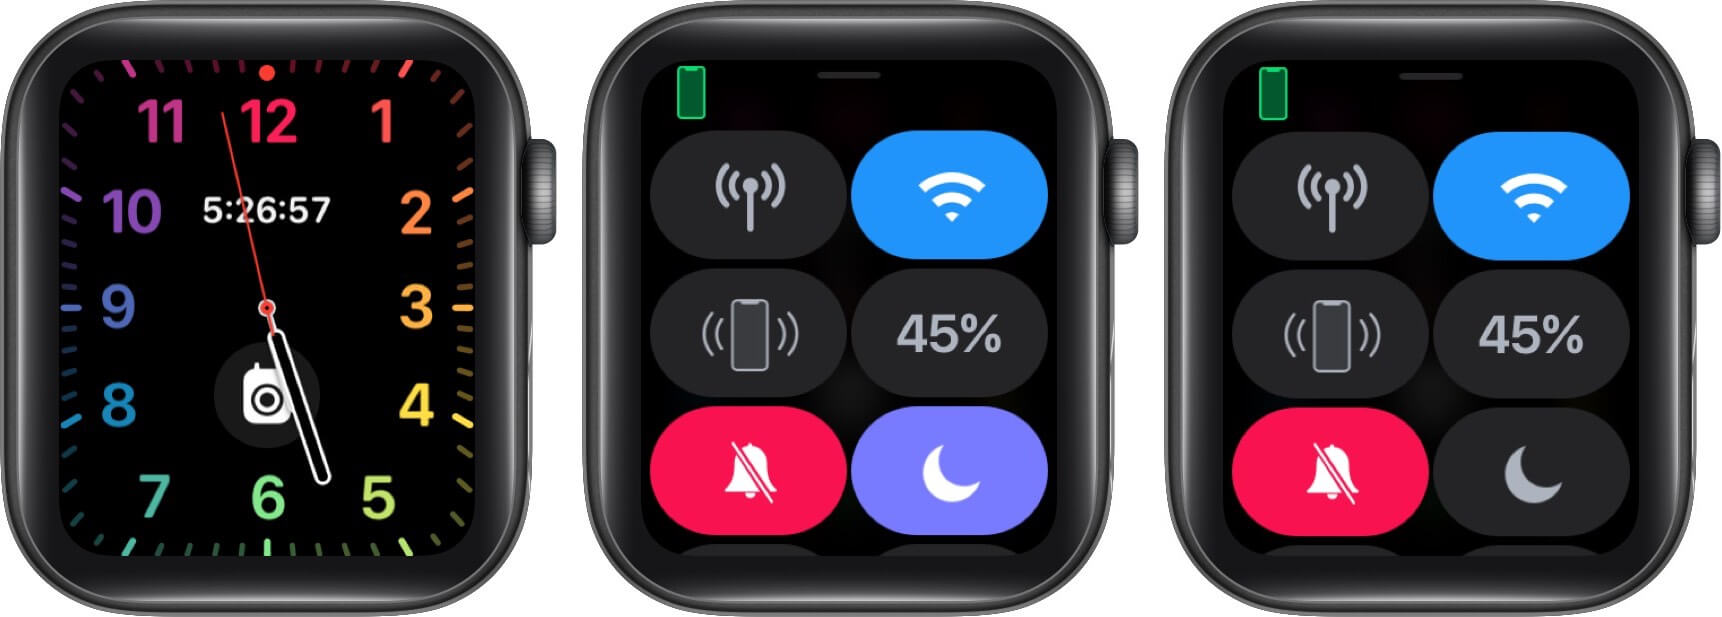 turn off do not disturb on apple watch